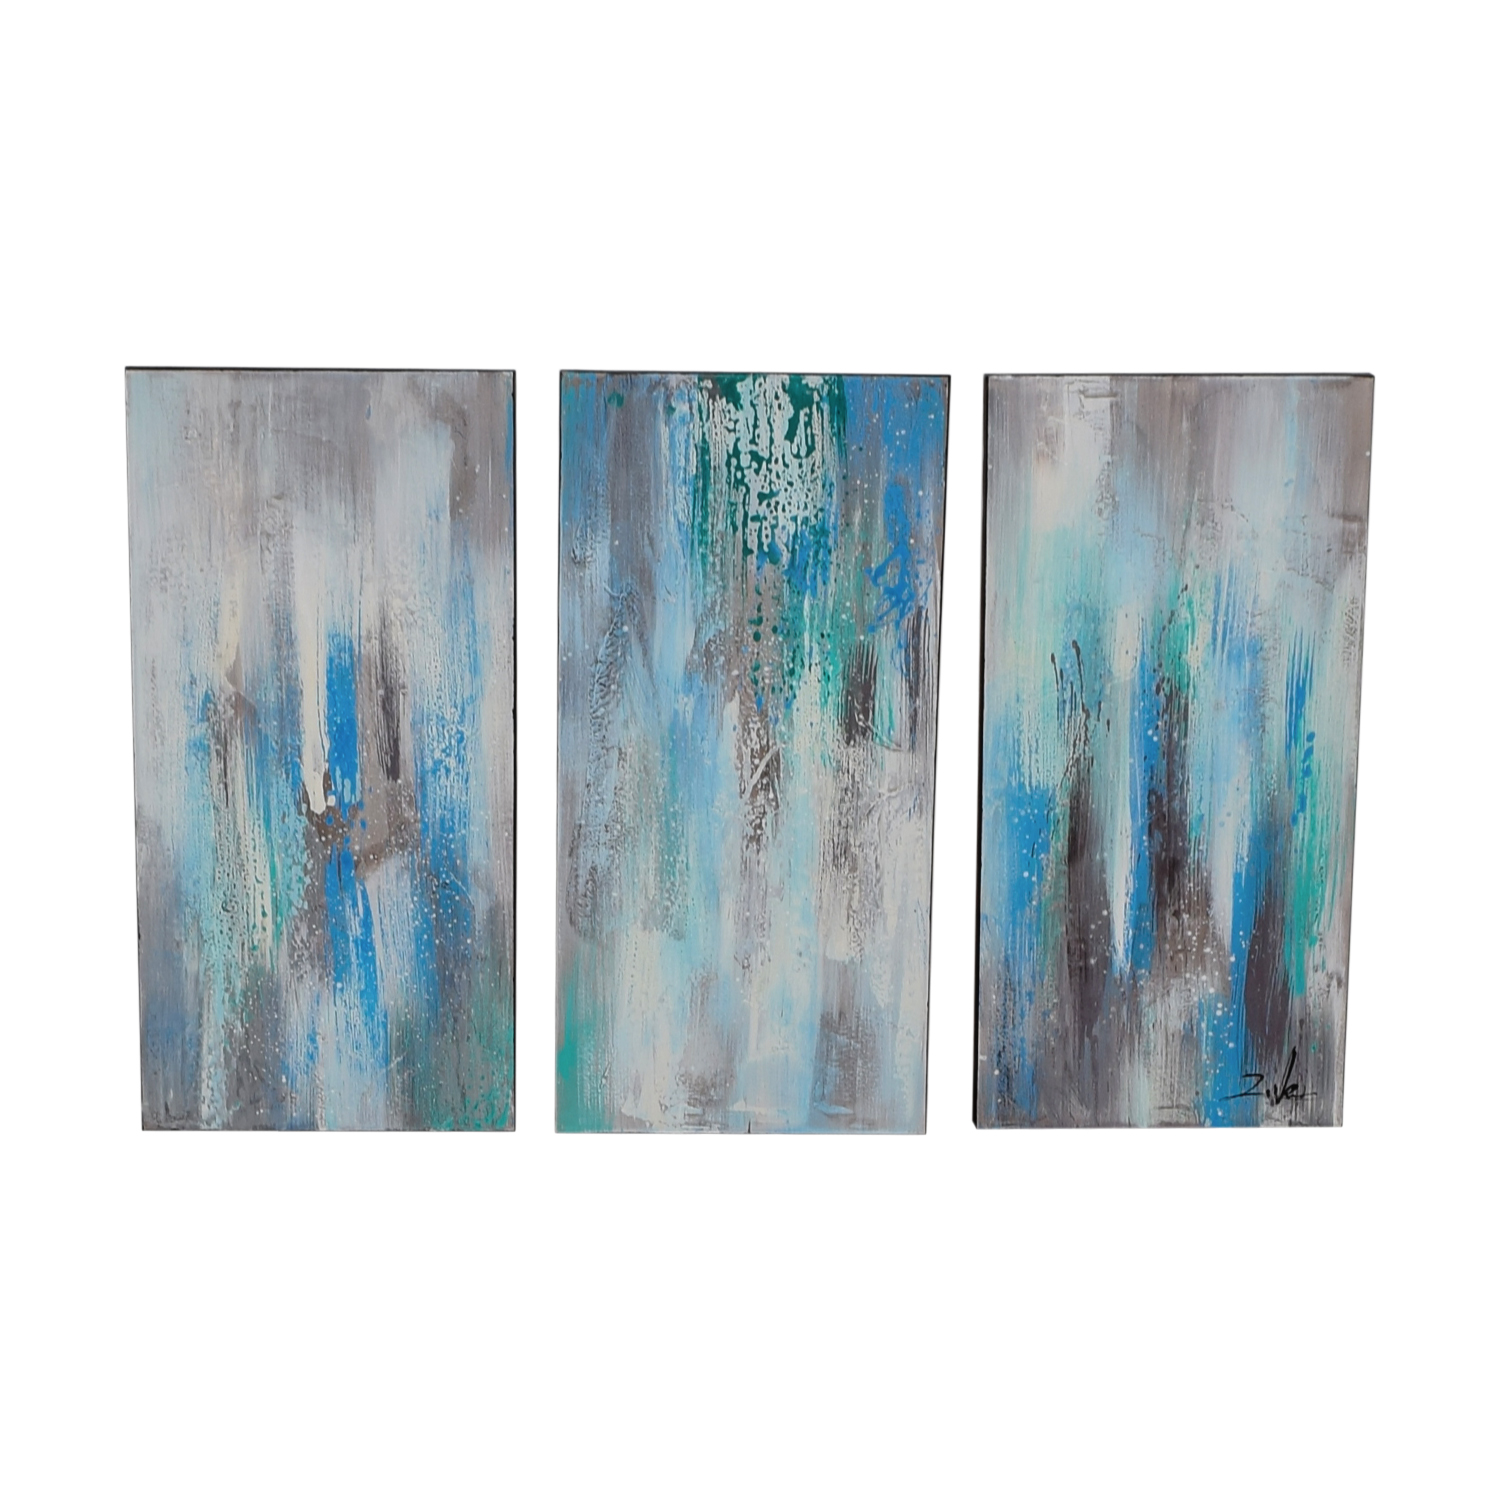 buy Sea of Clarity Three Piece Gallery Wrapped Canvas Painting